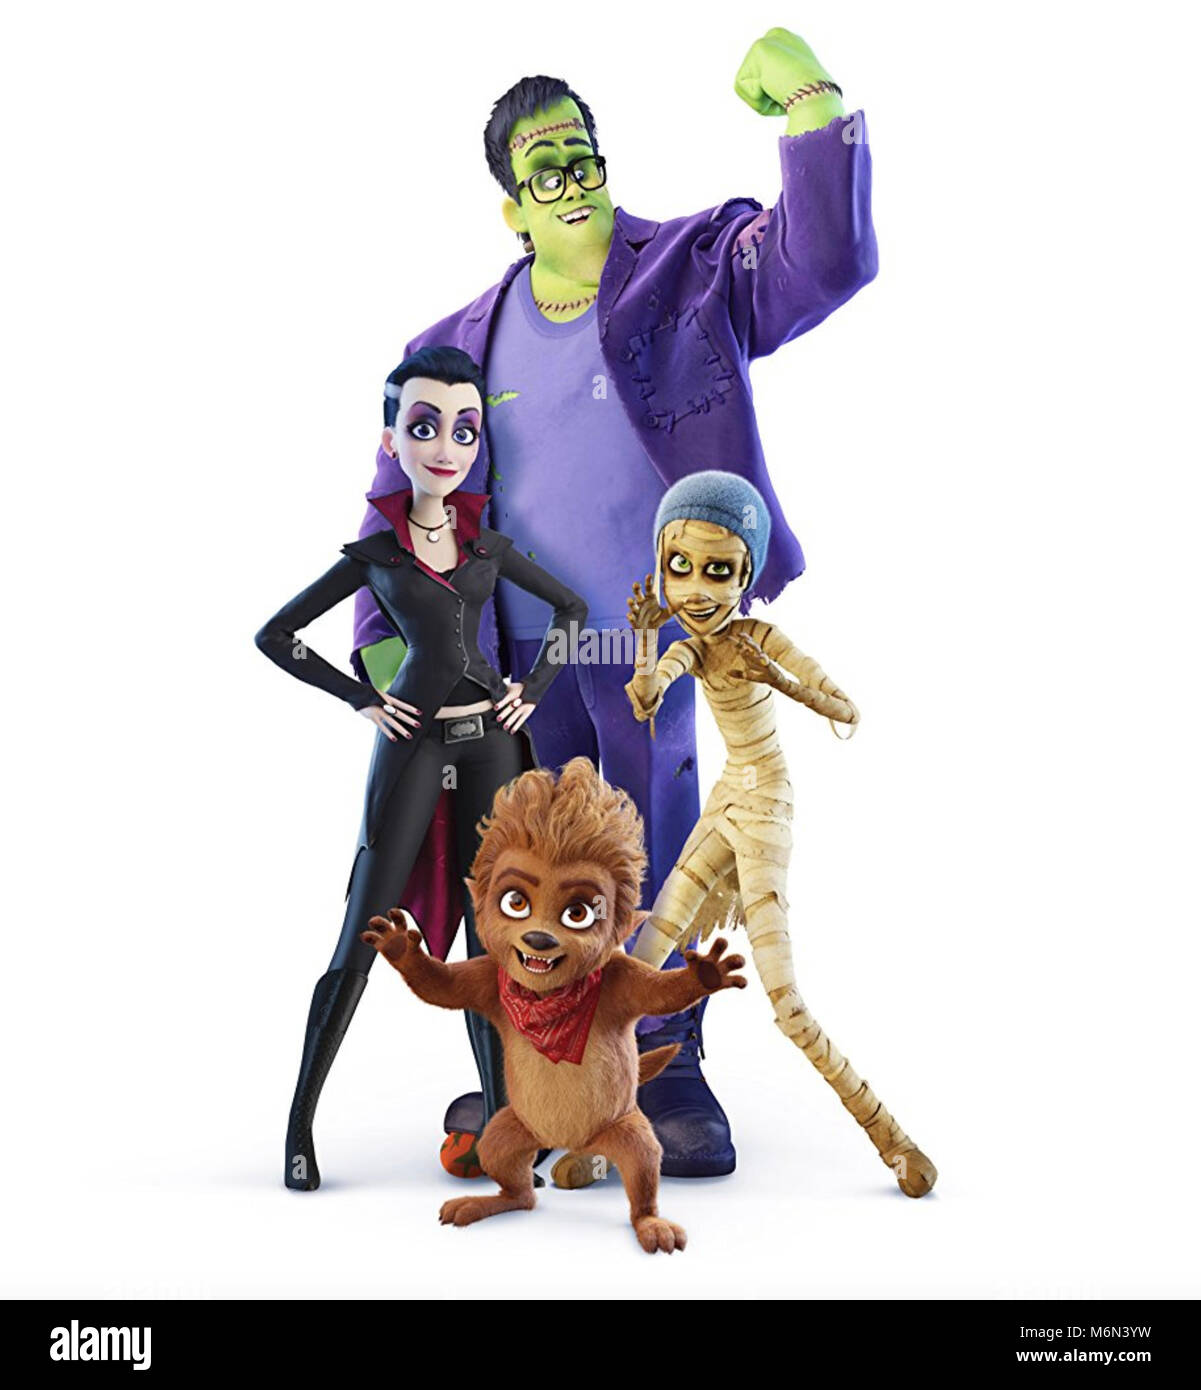 MONSTER FAMILY (aka Happy Family) 2017 Warner Bros/Attitude Film Distribution production - Stock Image